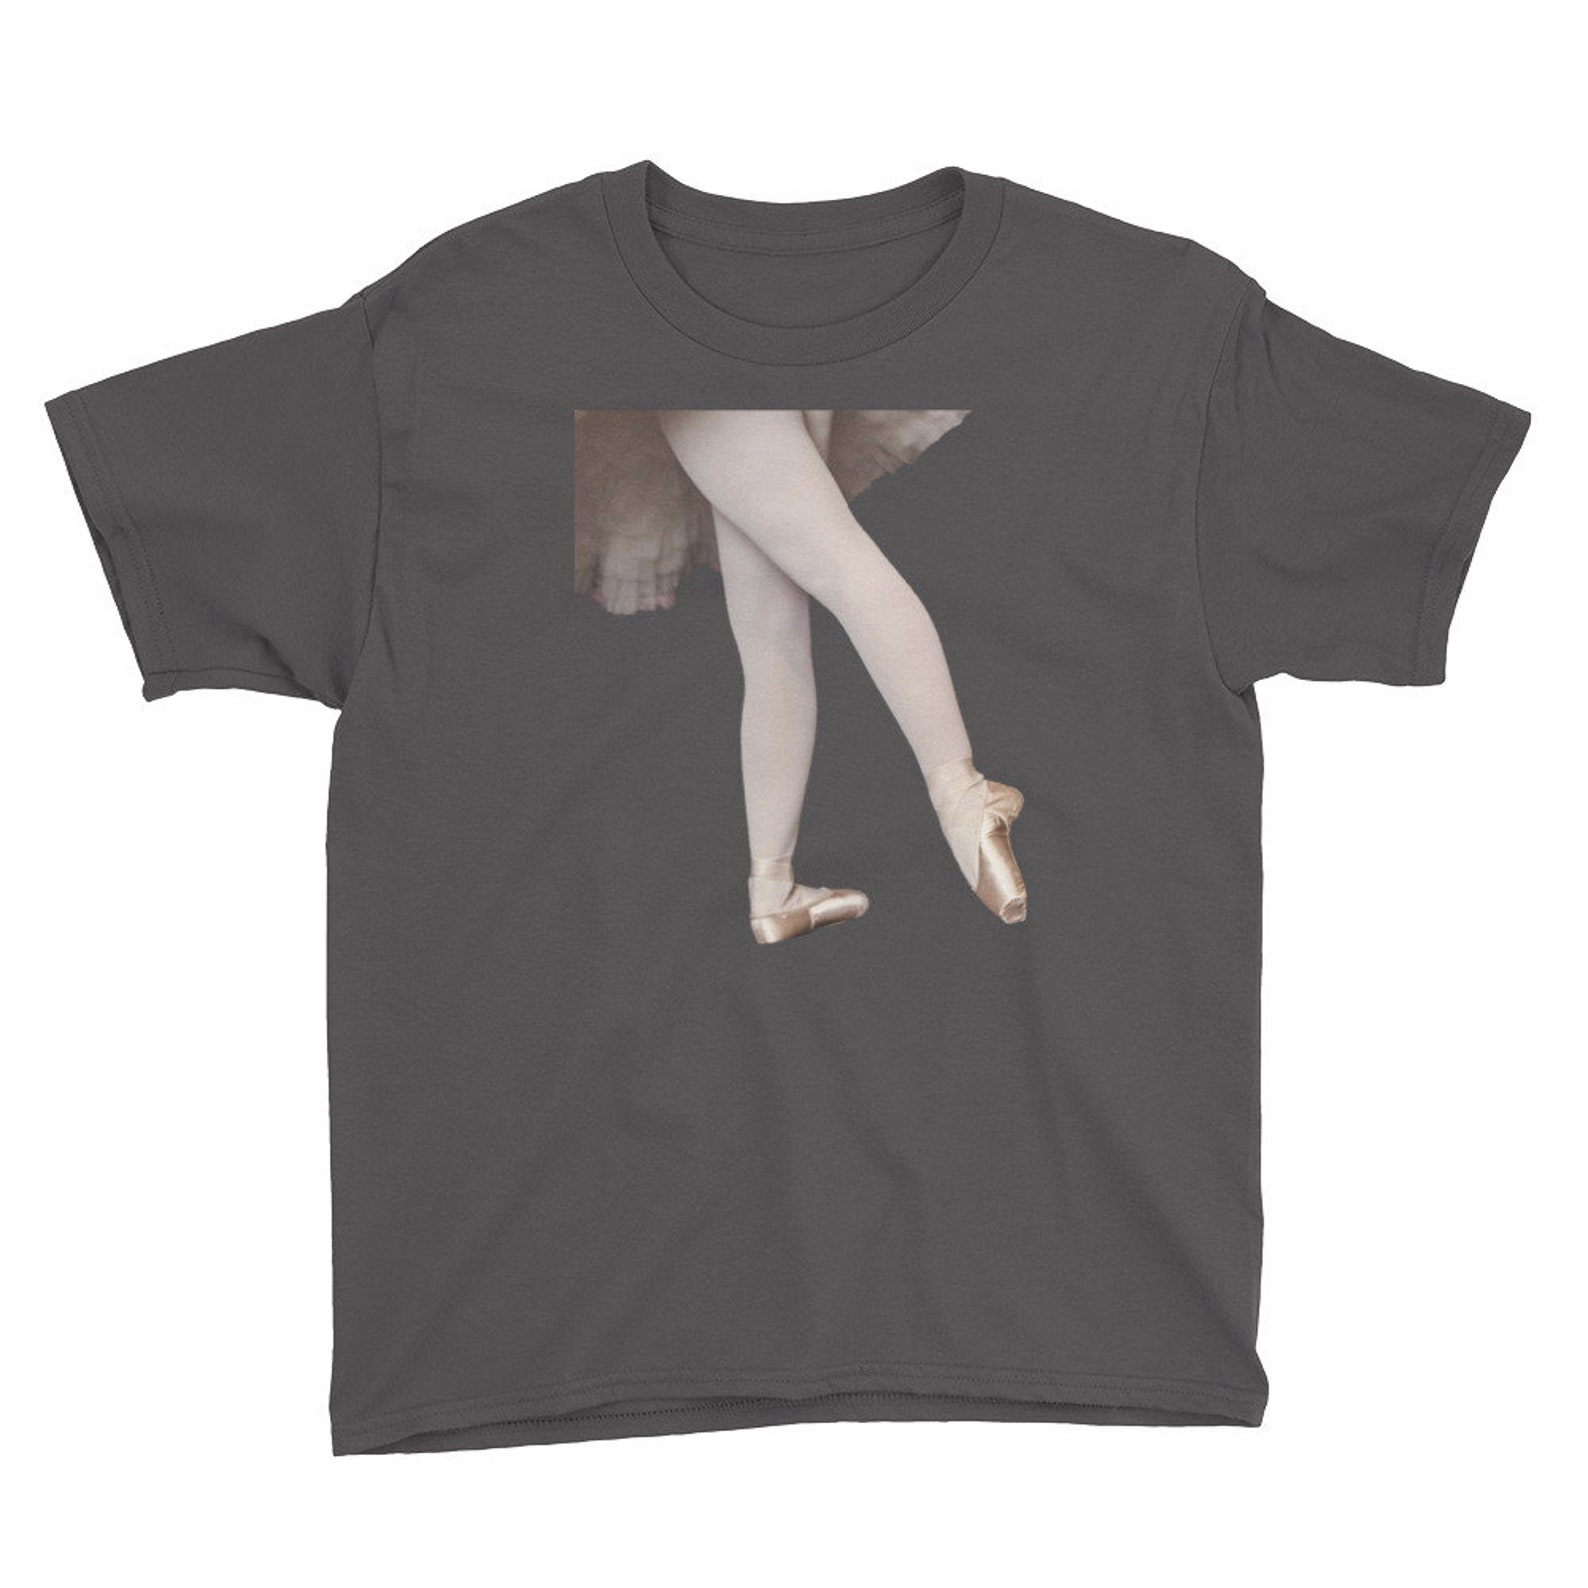 youth t-shirt/ballet feet screen printed shirt/children boutique/dancer/ballerina/sew on pointe